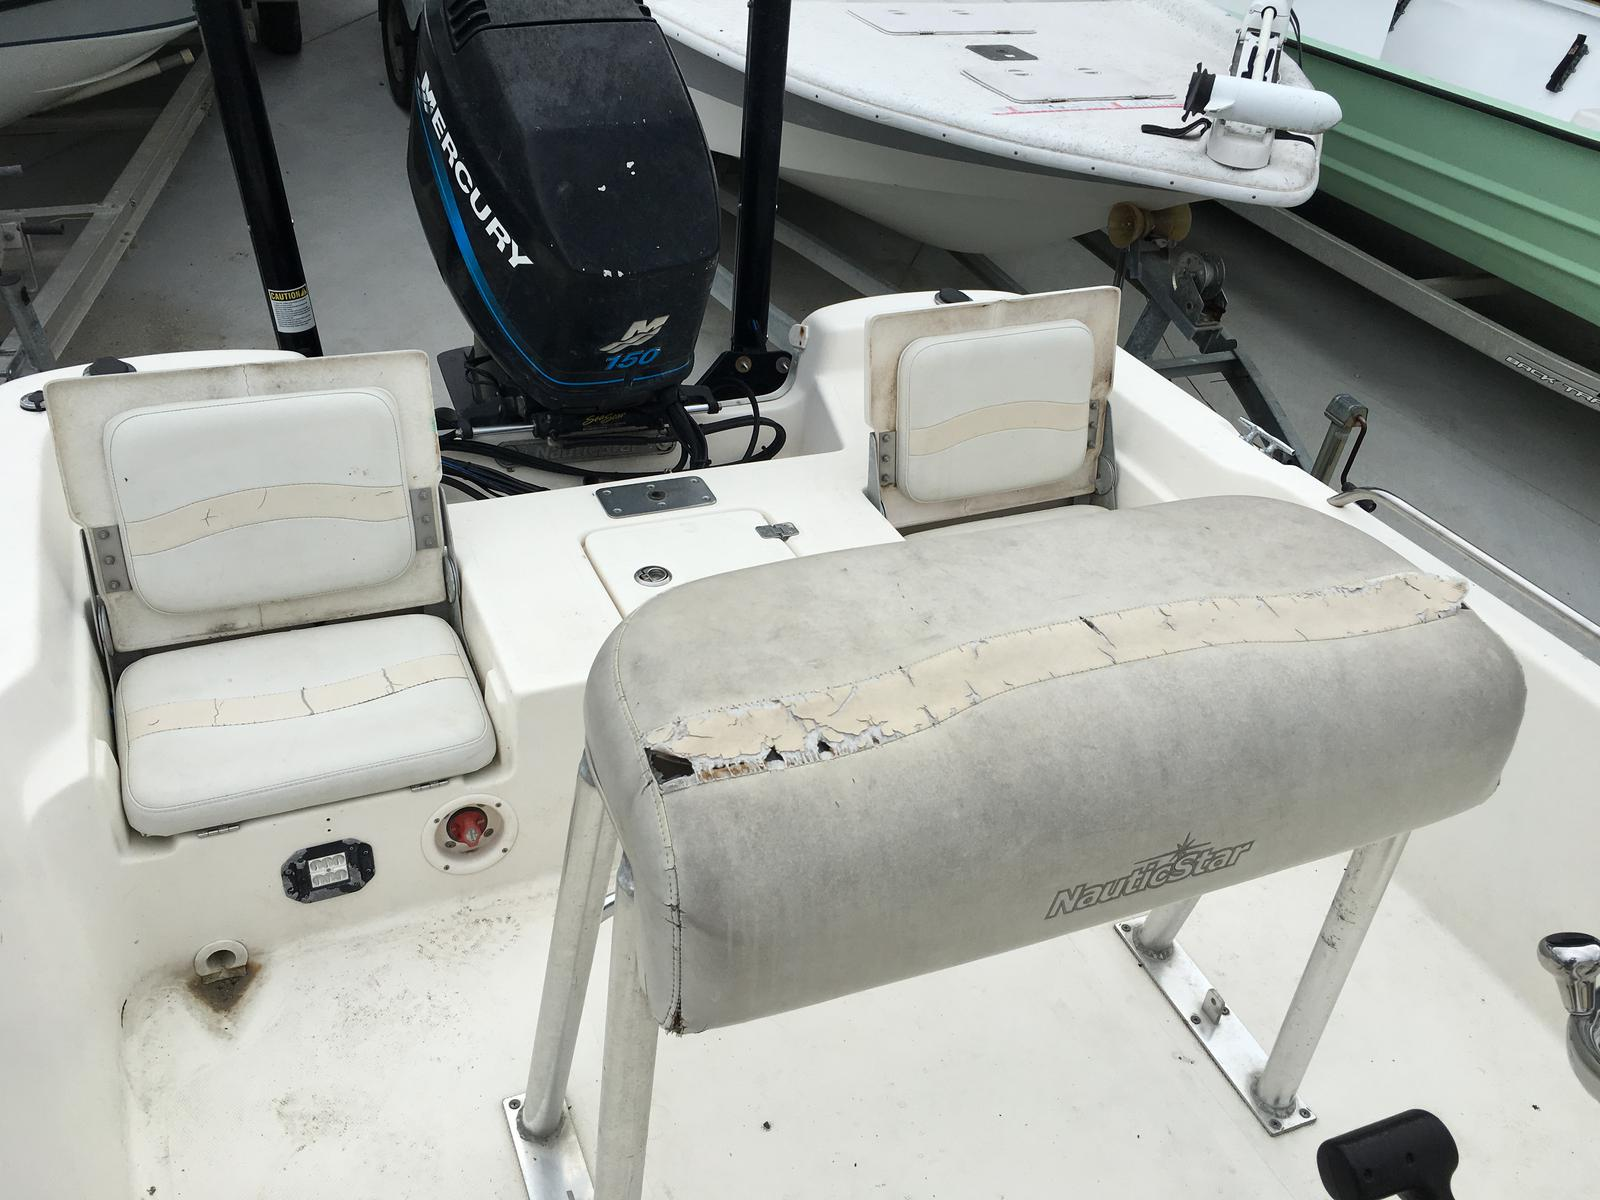 2006 Nautic Star boat for sale, model of the boat is 2110 & Image # 6 of 11